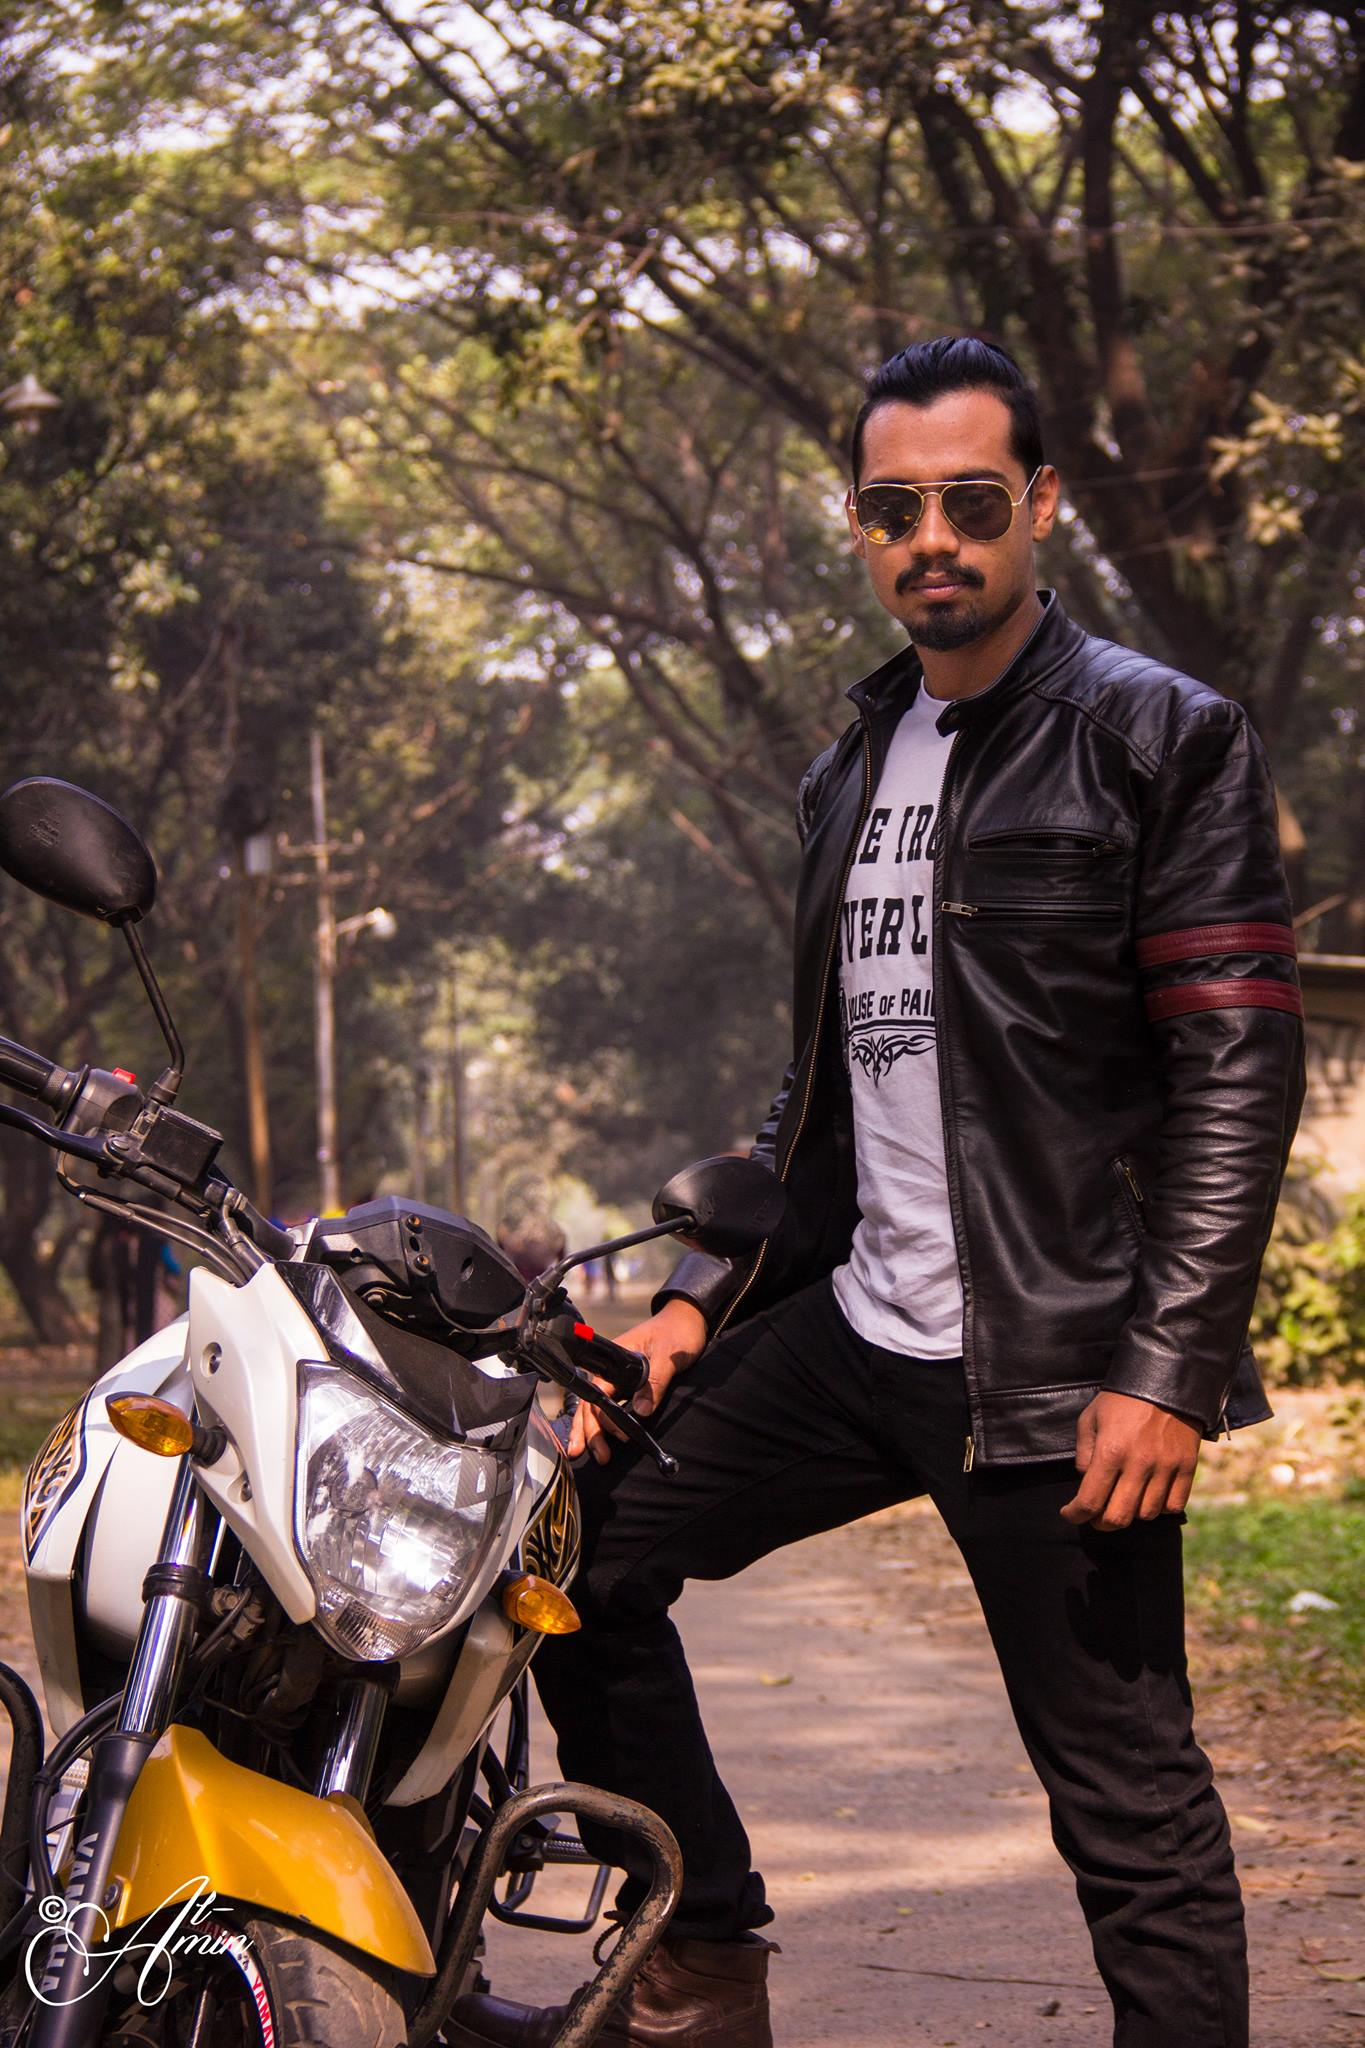 Azraf Hossen Rahat Wears a Biker Jacket RA:02 From RAVEN's Collection of Winter 2018-2019